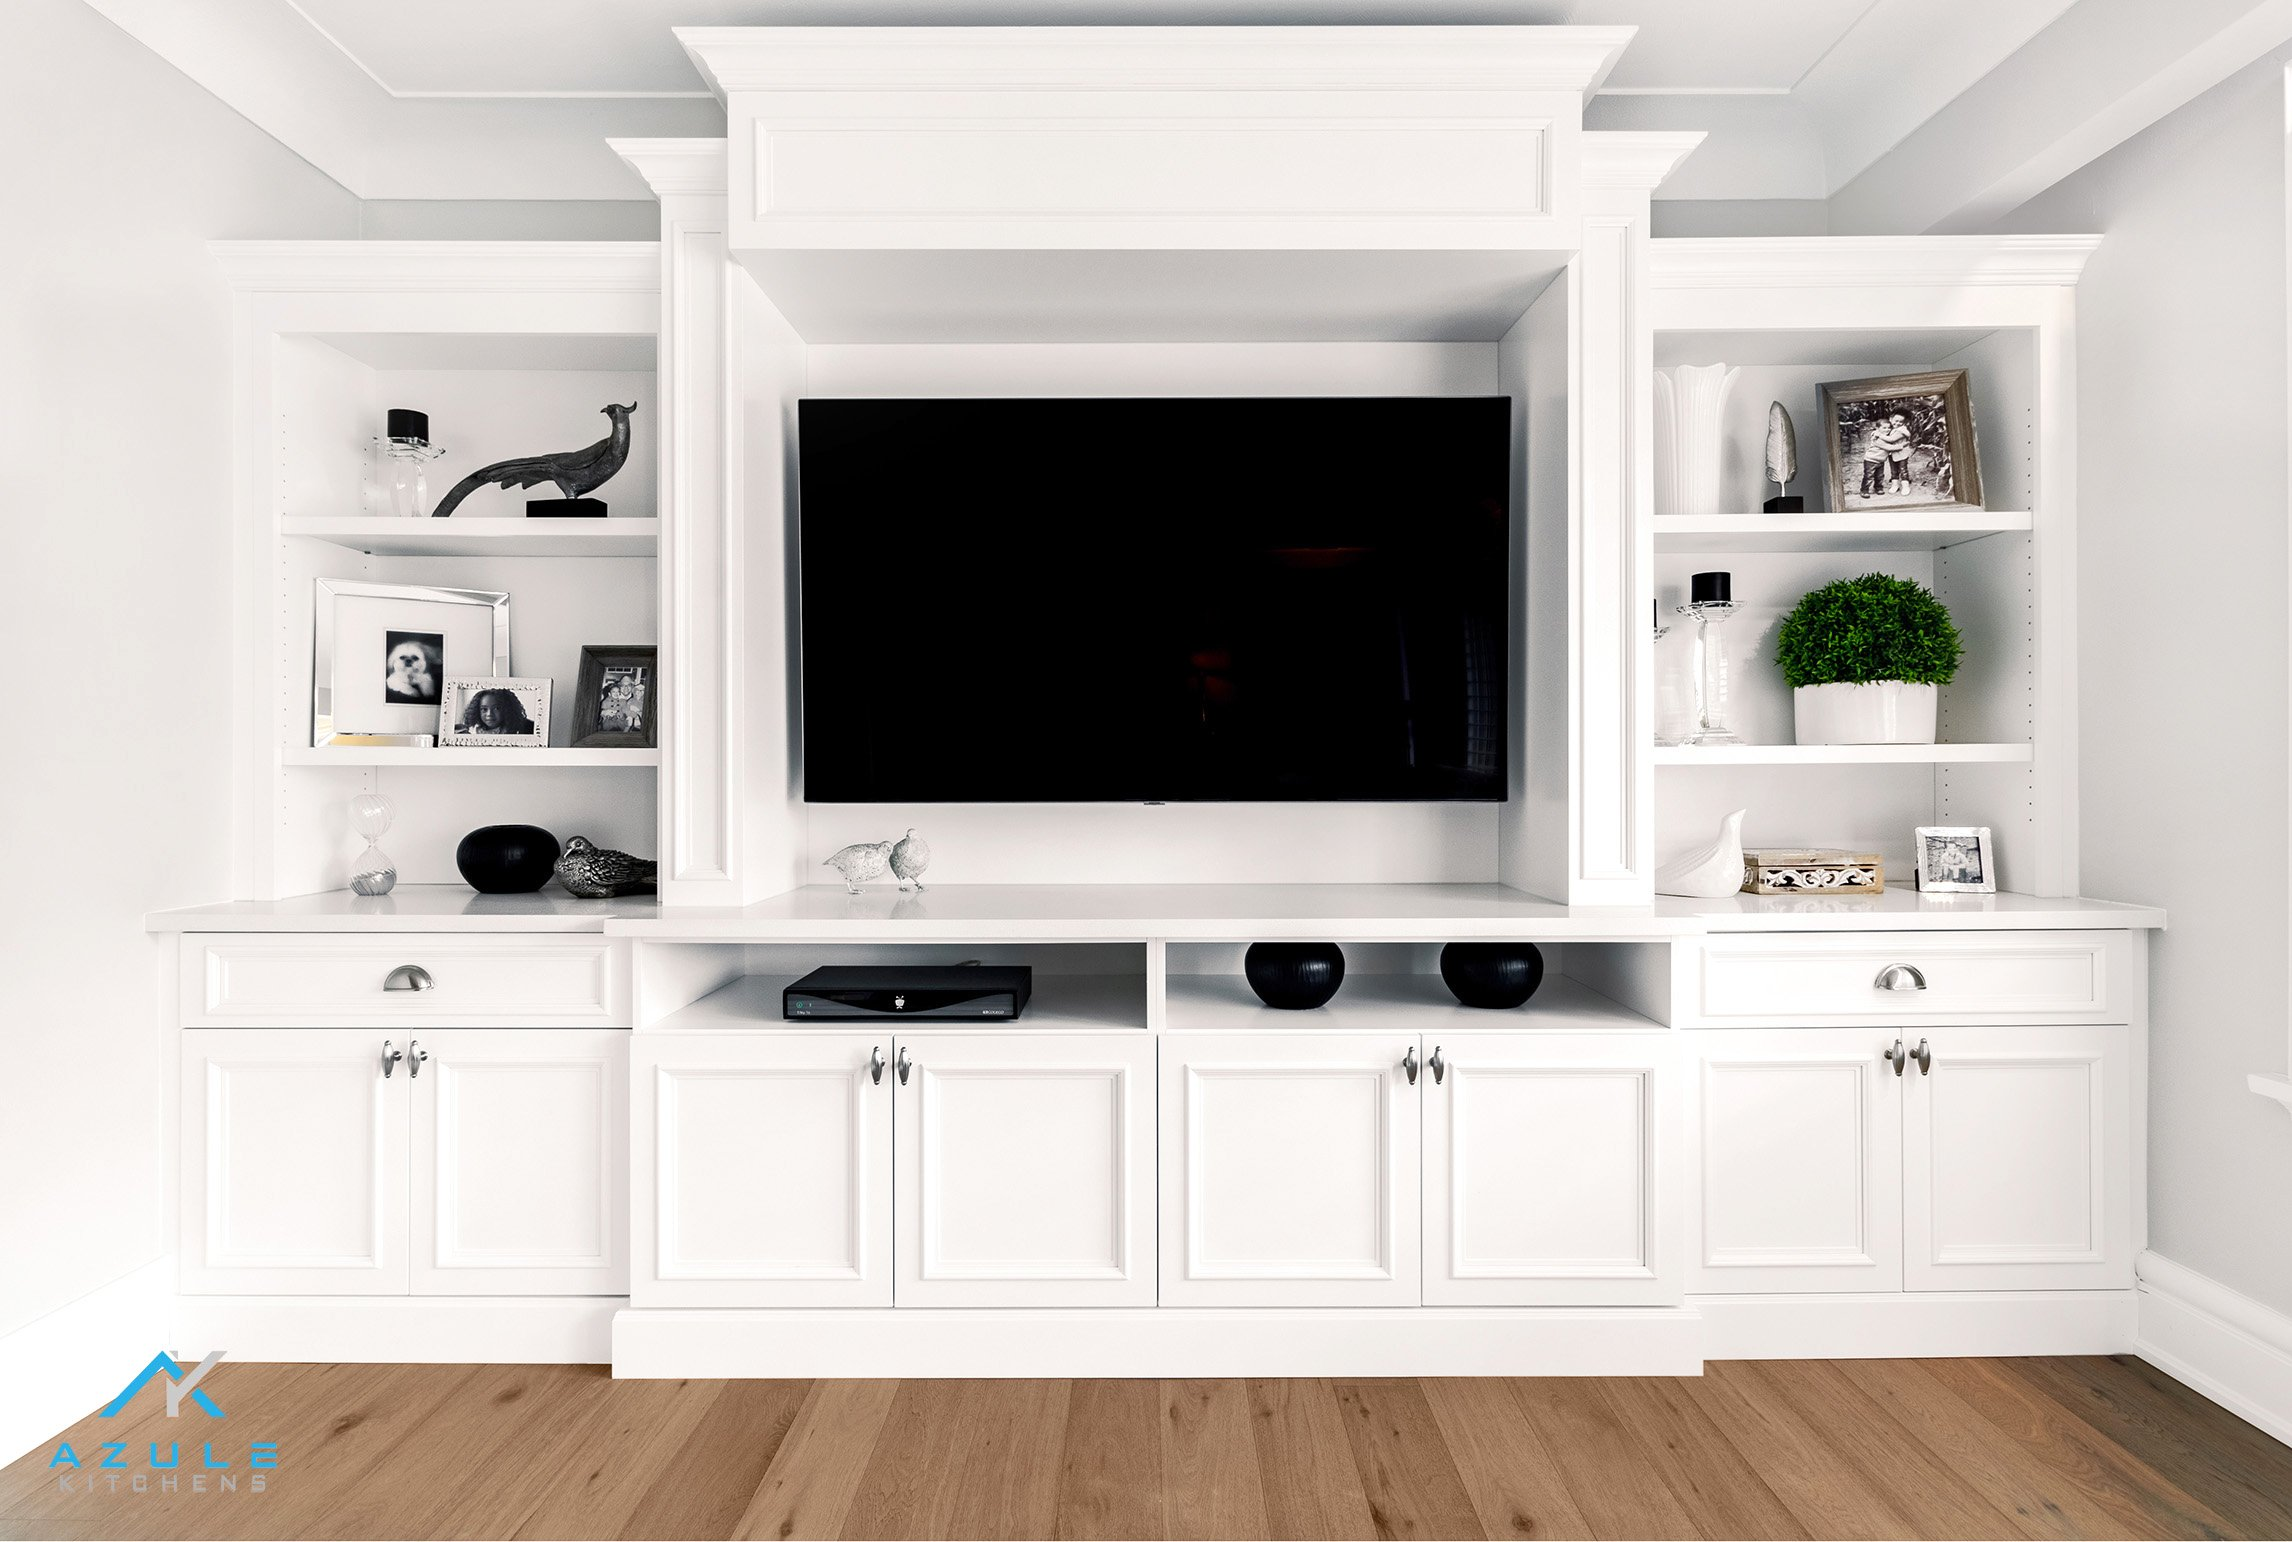 Azule kitchens – Benefits of A Home Redesign